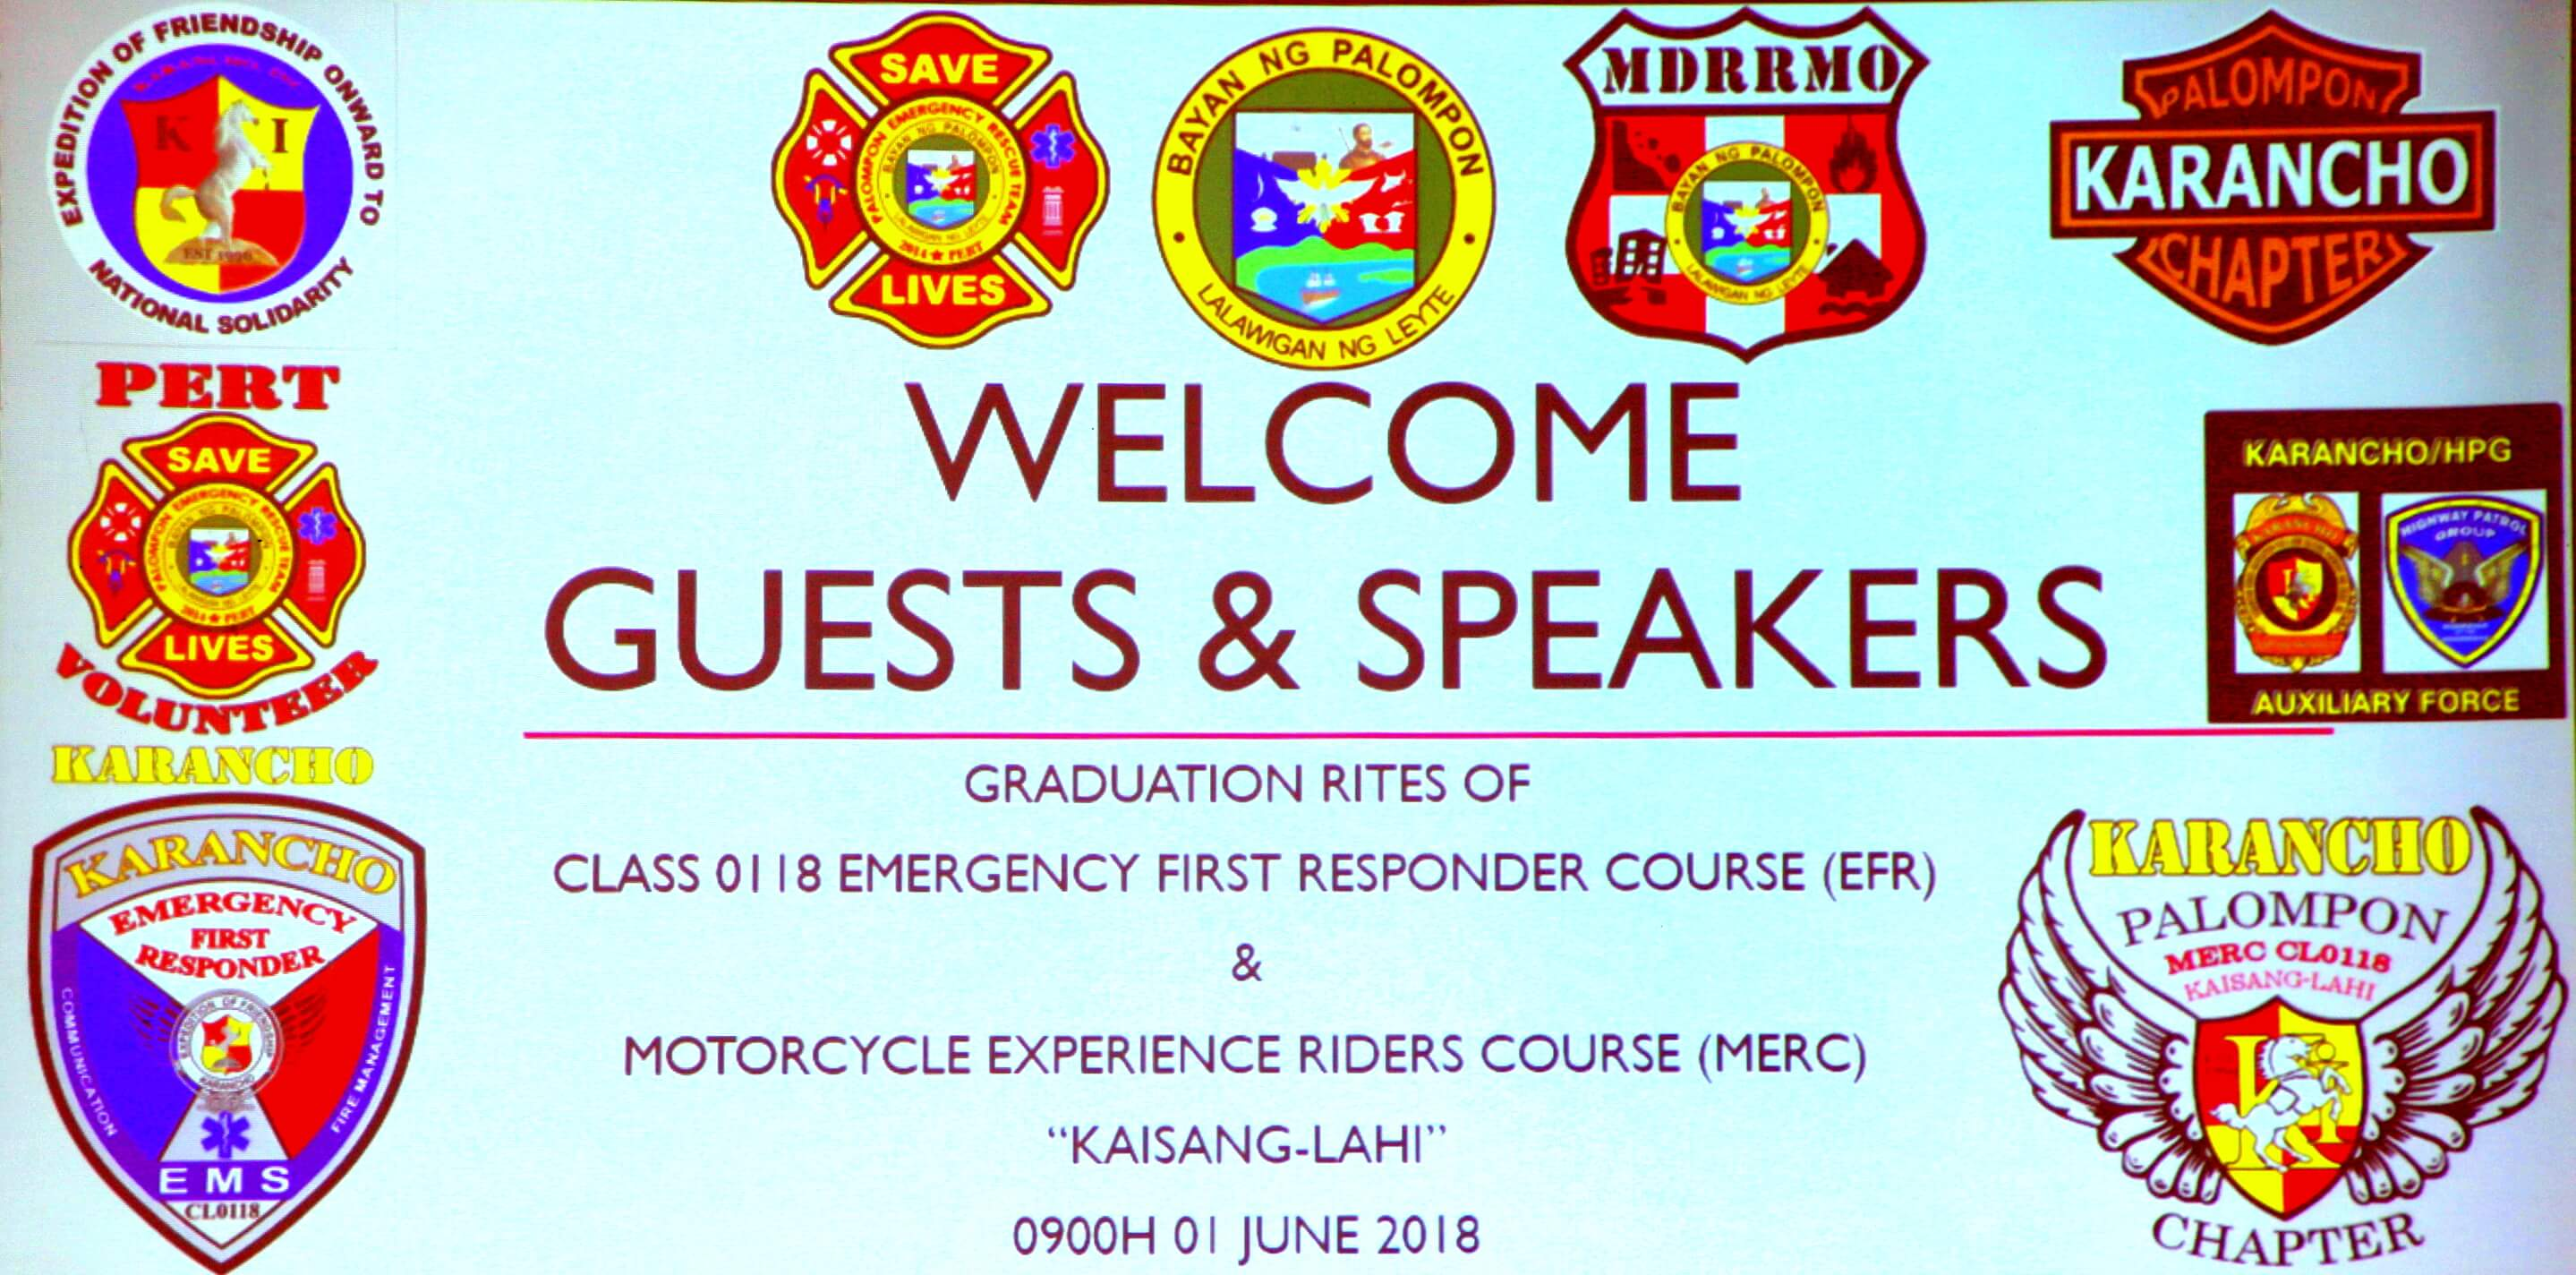 Graduation Rites of Class 0118 Emergency First Responder Course